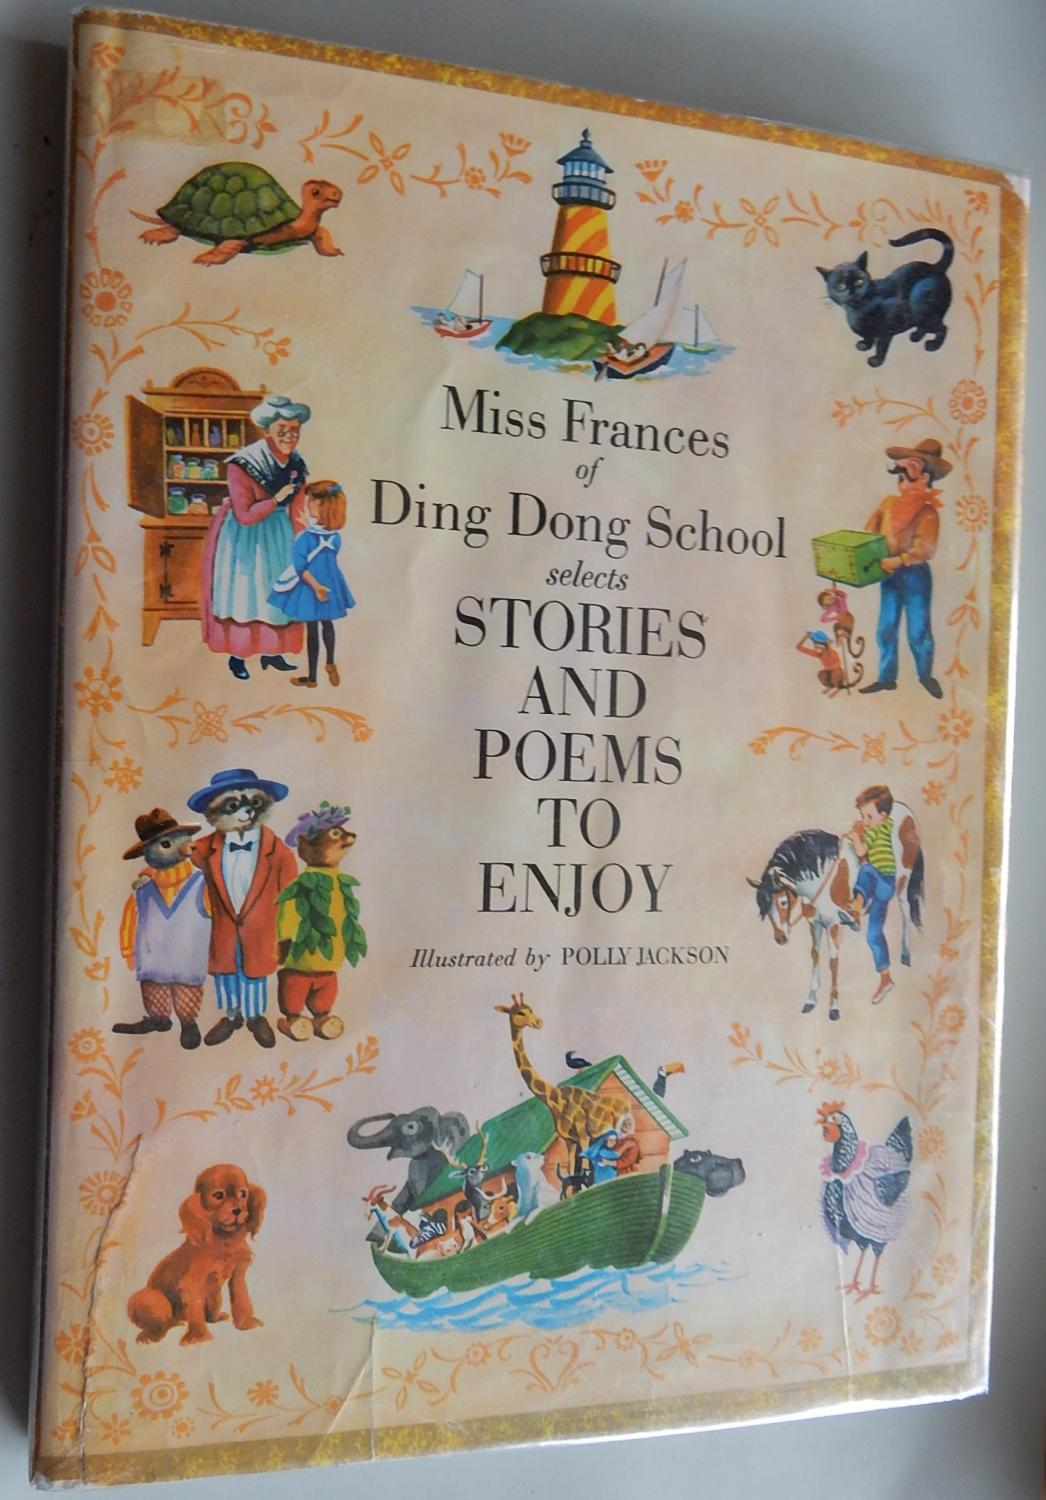 Stories and Poems to Enjoy. Miss Frances of Ding Dong School. Illustrated by Polly Jackson. Fine Hardcover